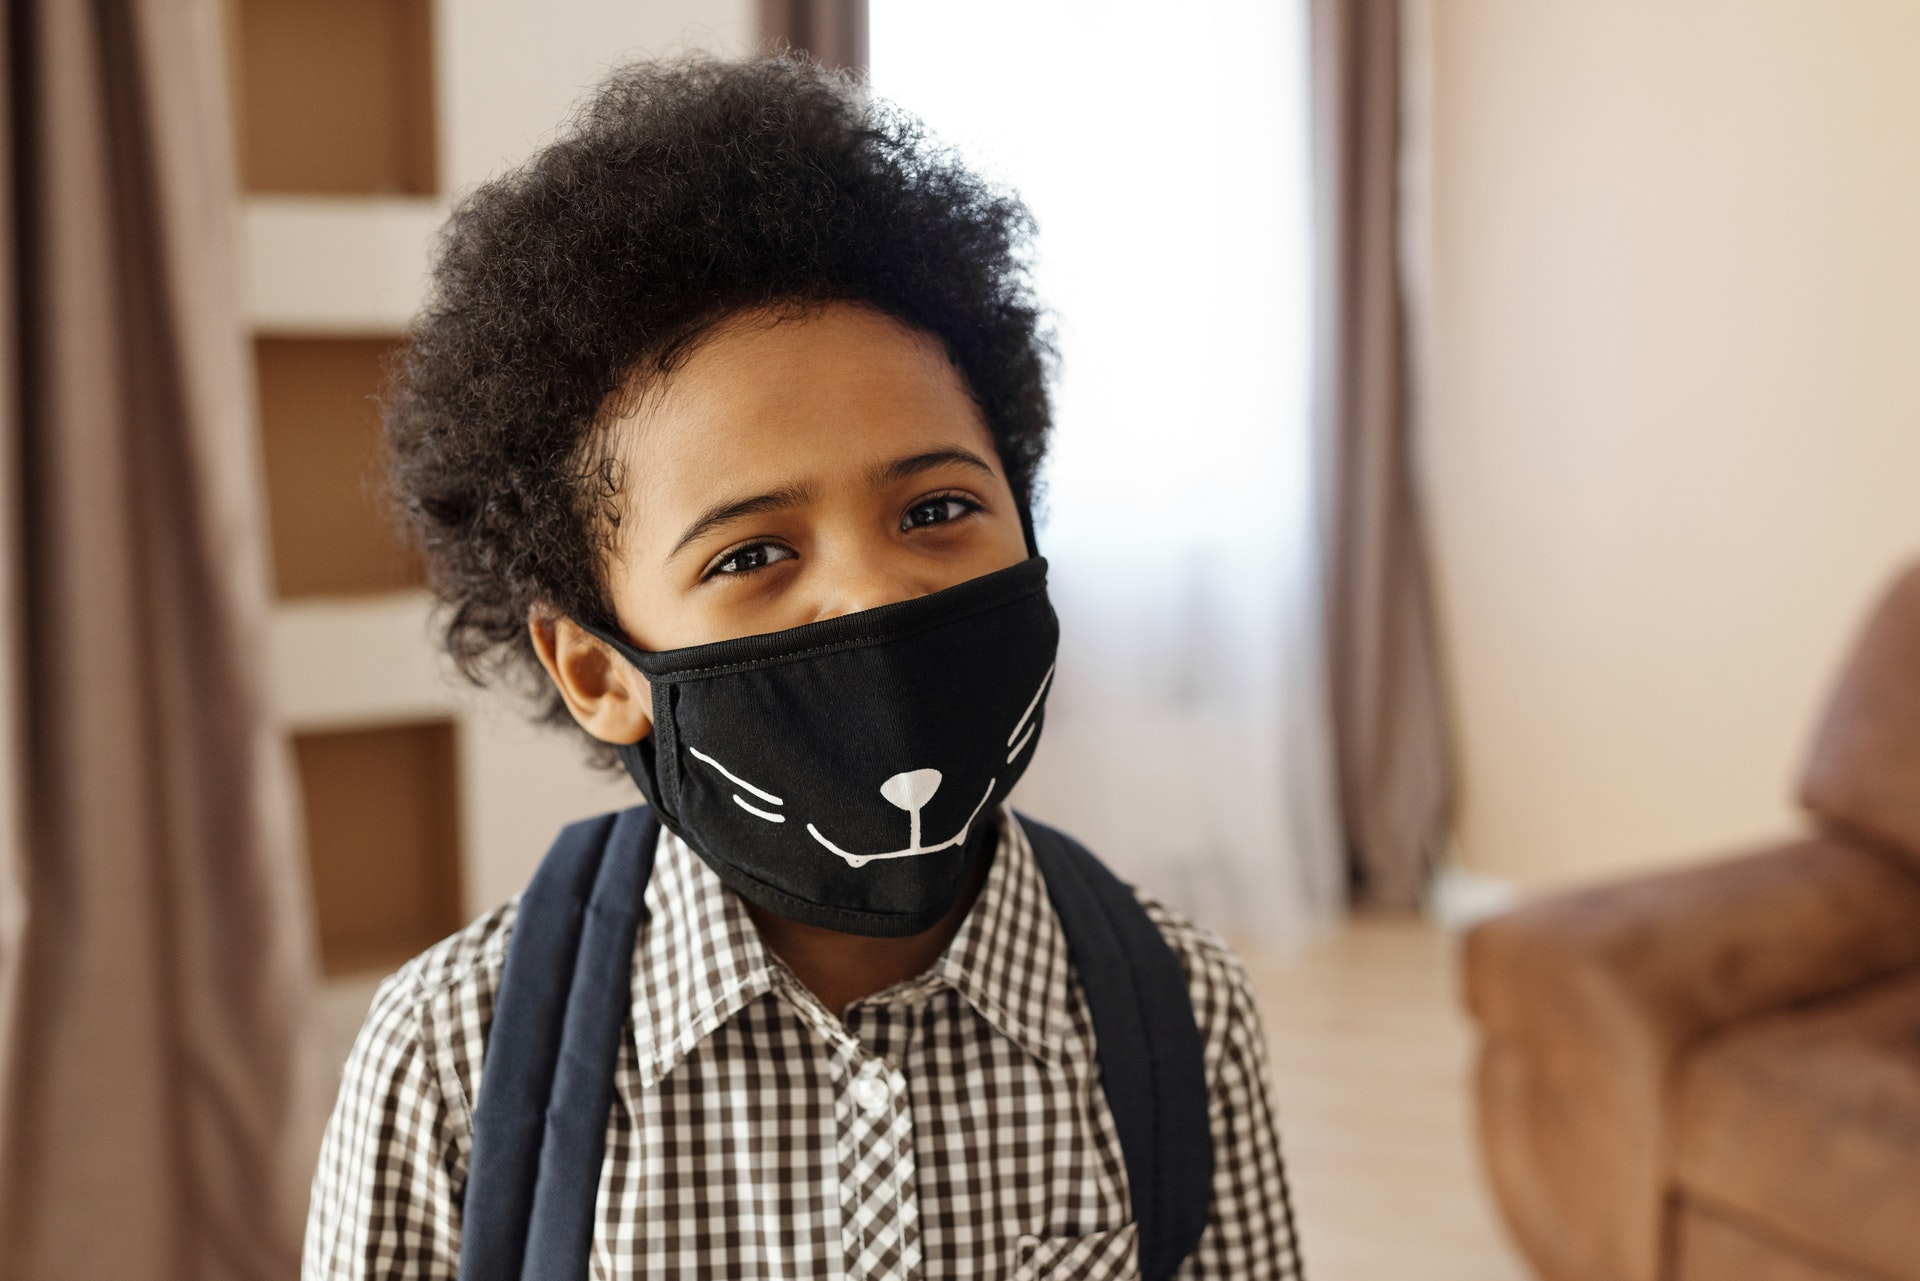 boy with custom face mask featuring cat's whiskers